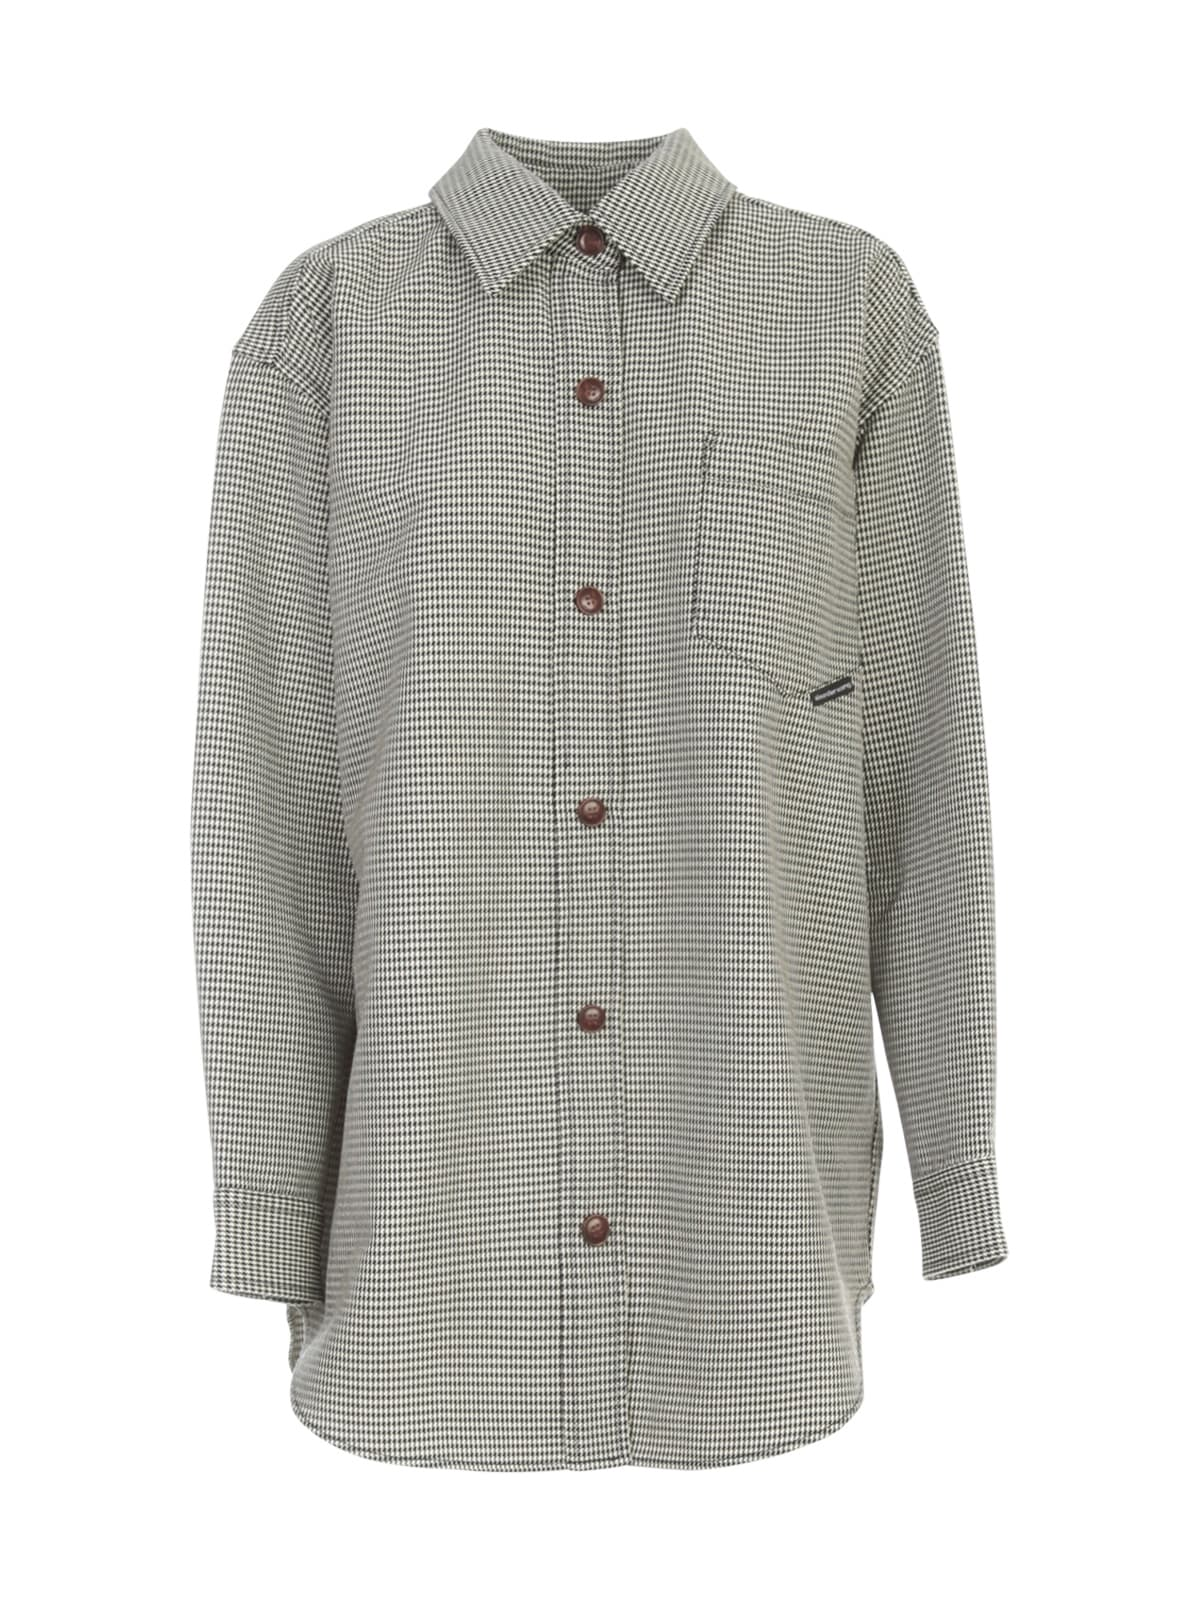 Alexander Wang OVERSIZED SHIRT JACKET W/SNAP BUTTONS